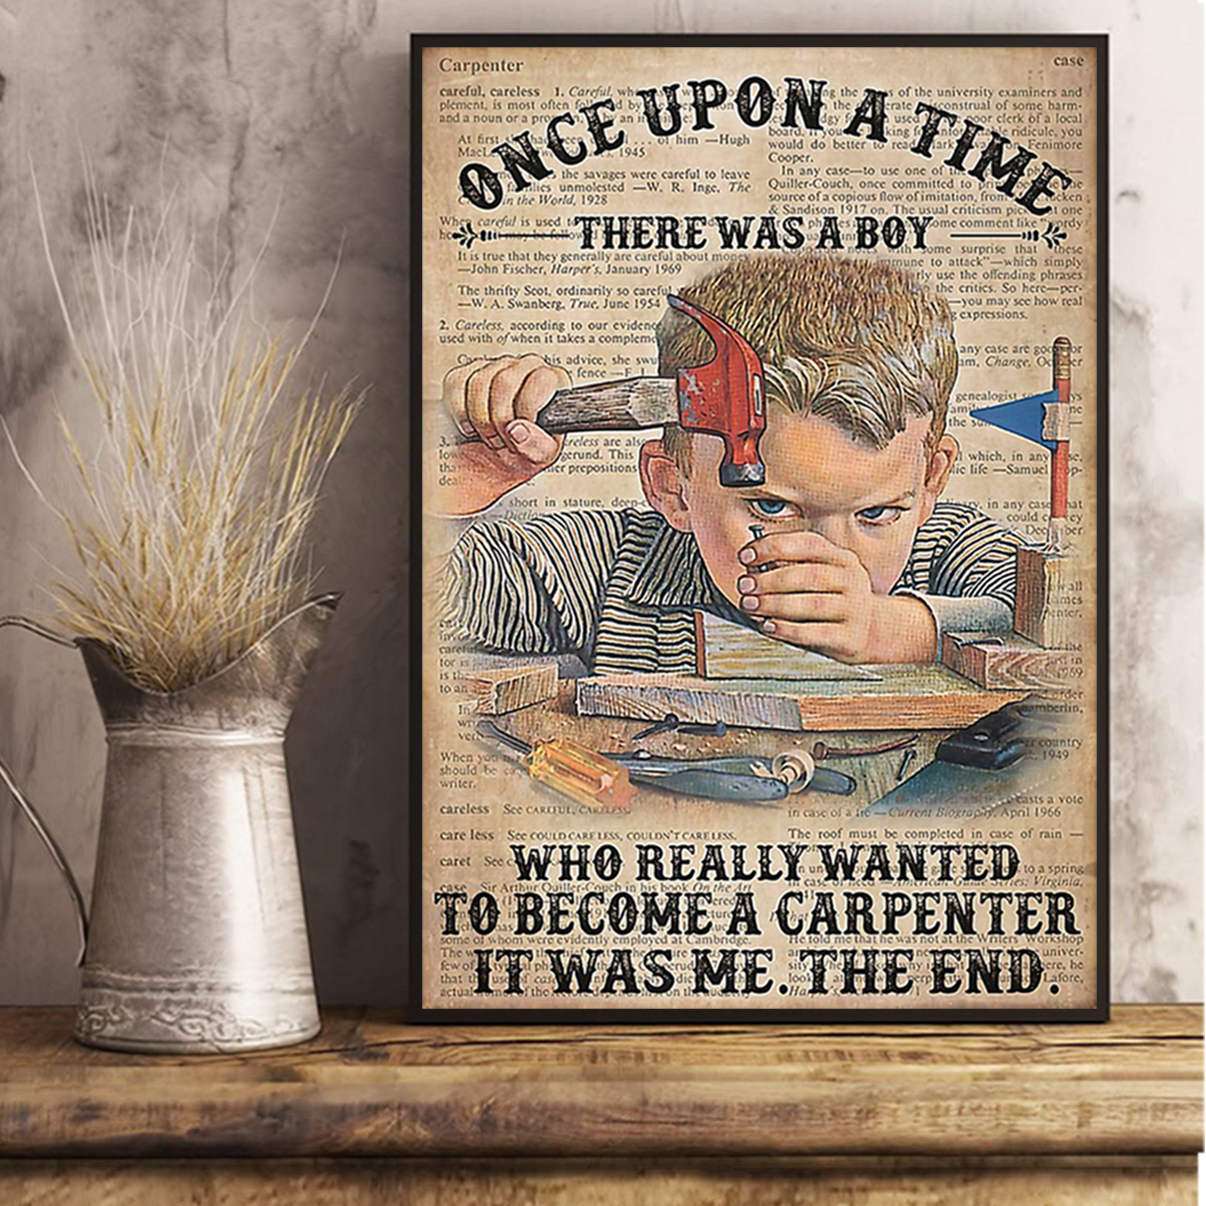 Once upon a time there was a boy who really wanted to become a carpenter poster A1